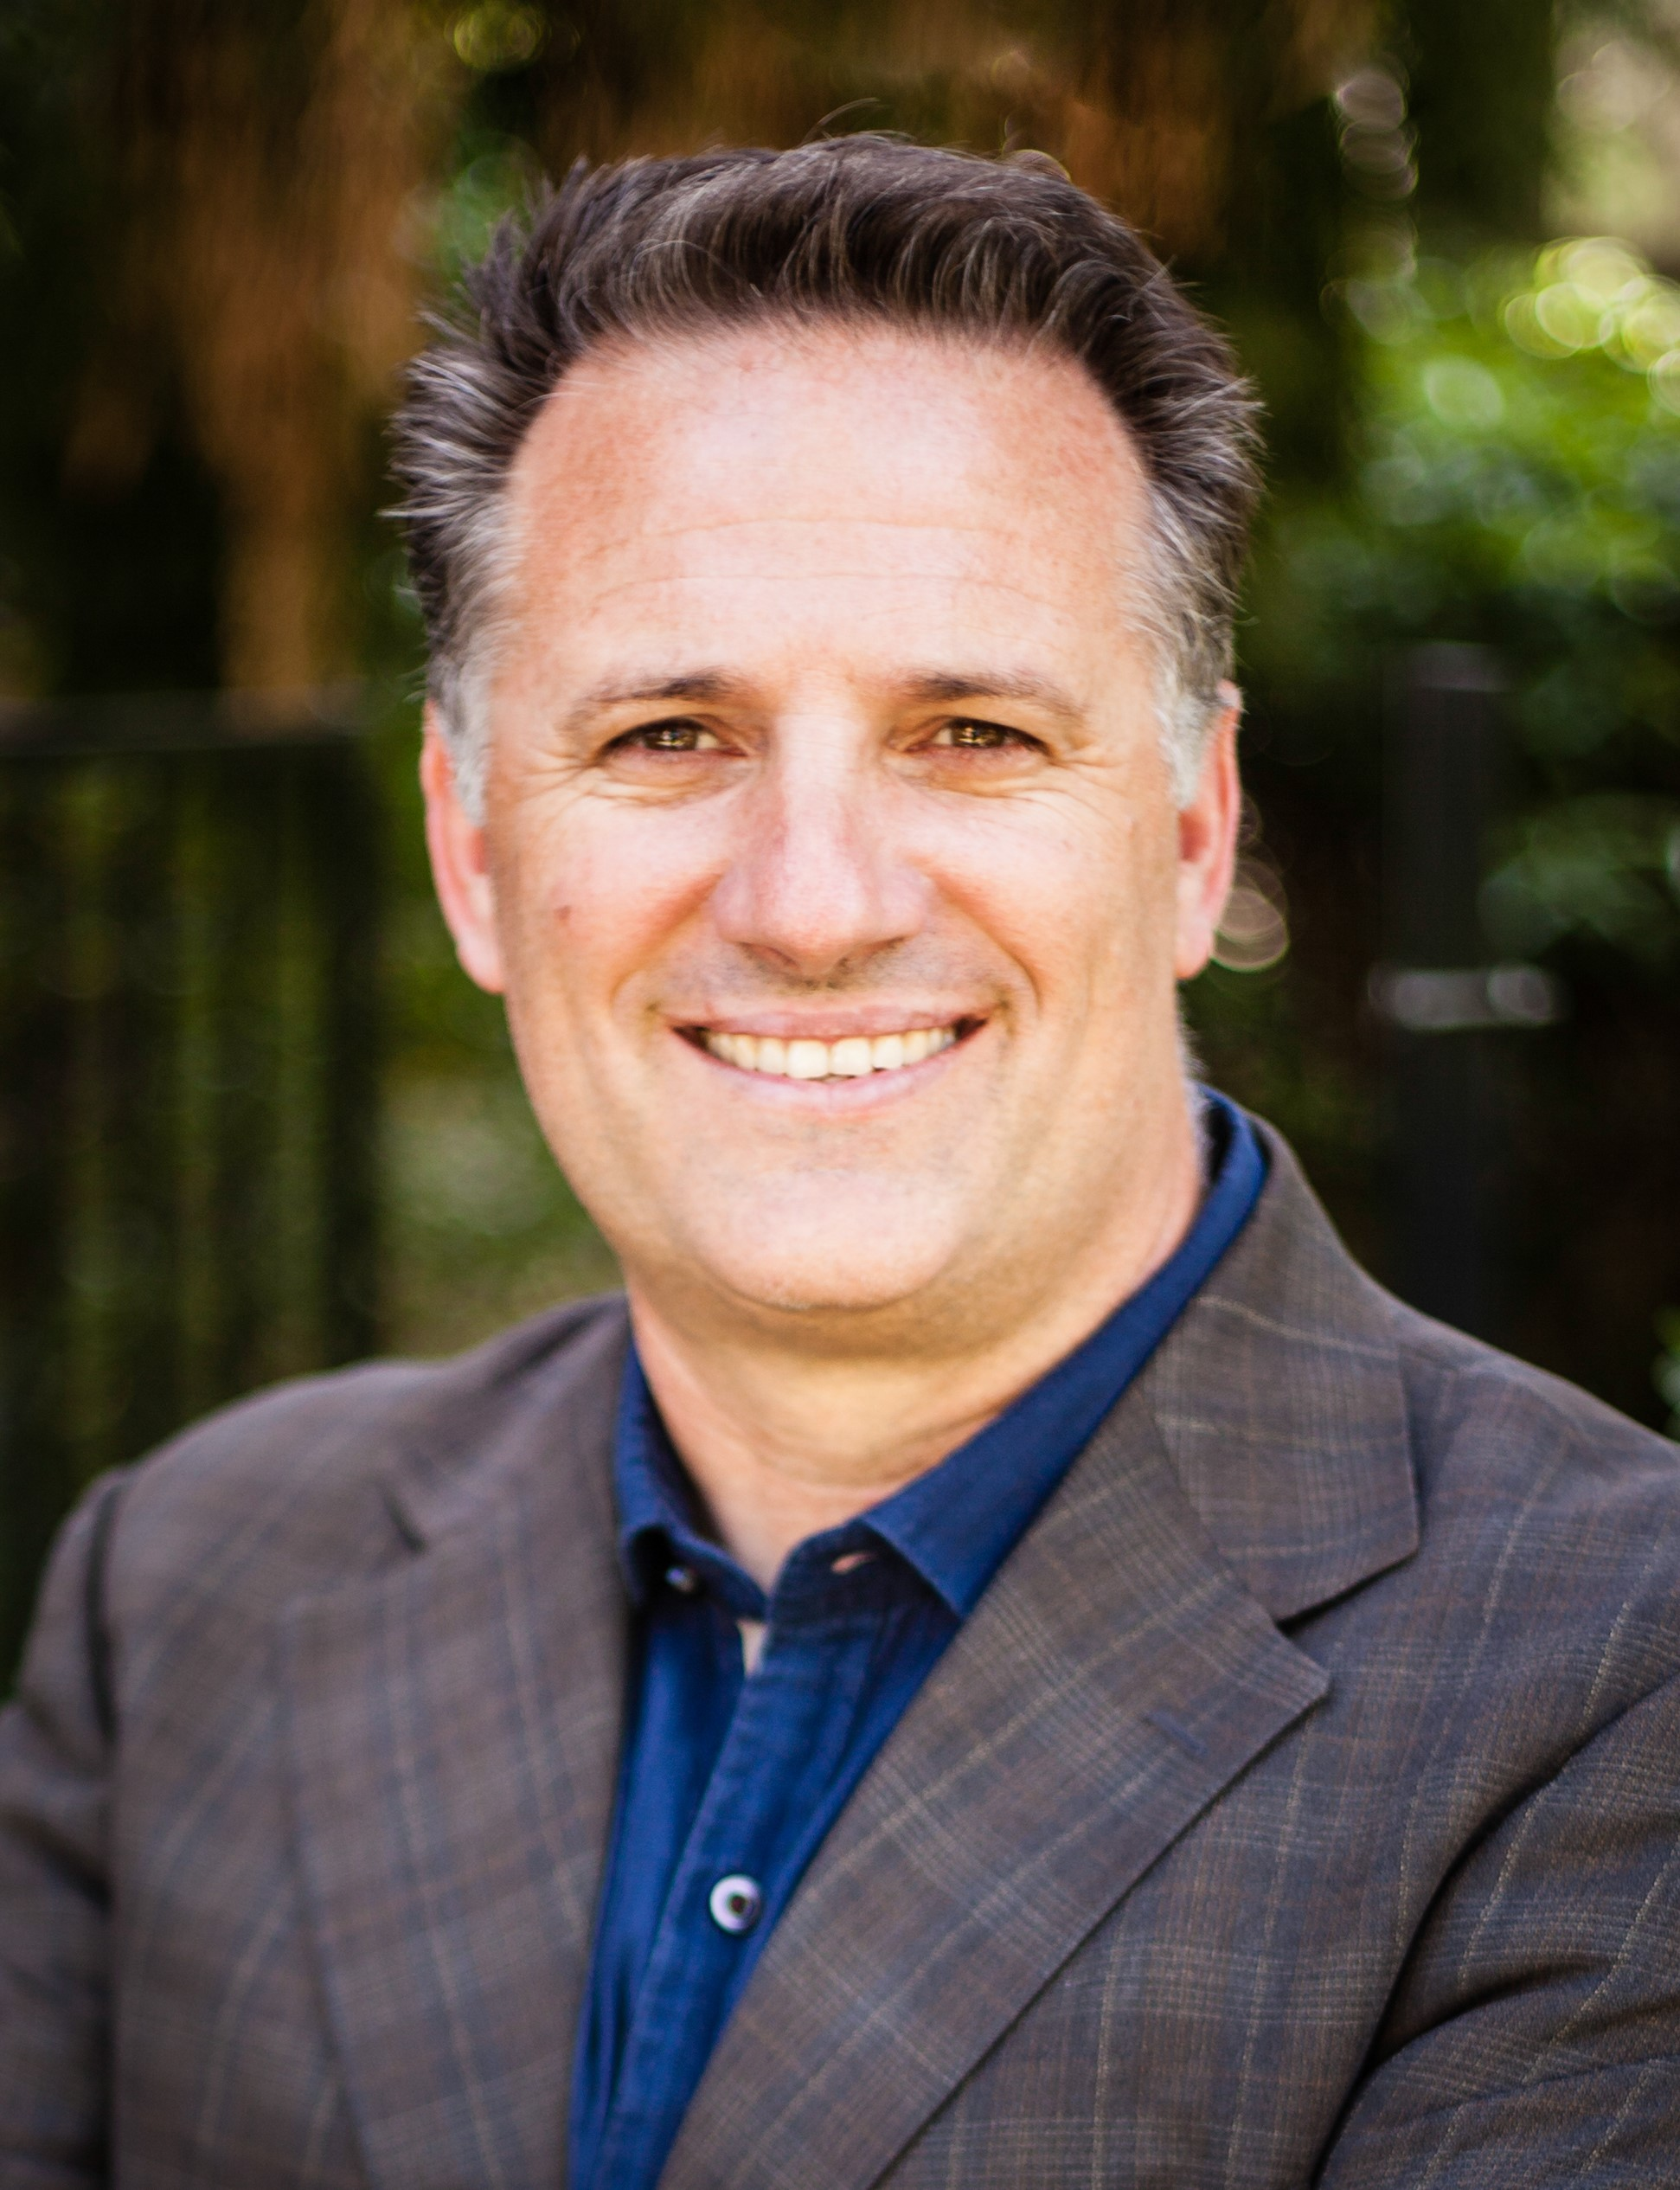 Reverend Dr. Tod Bolsinger is the Vice President for Vocation and Formation and Assistant Professor of Practical Theology at Fuller Theological Seminary • Pasadena, CA